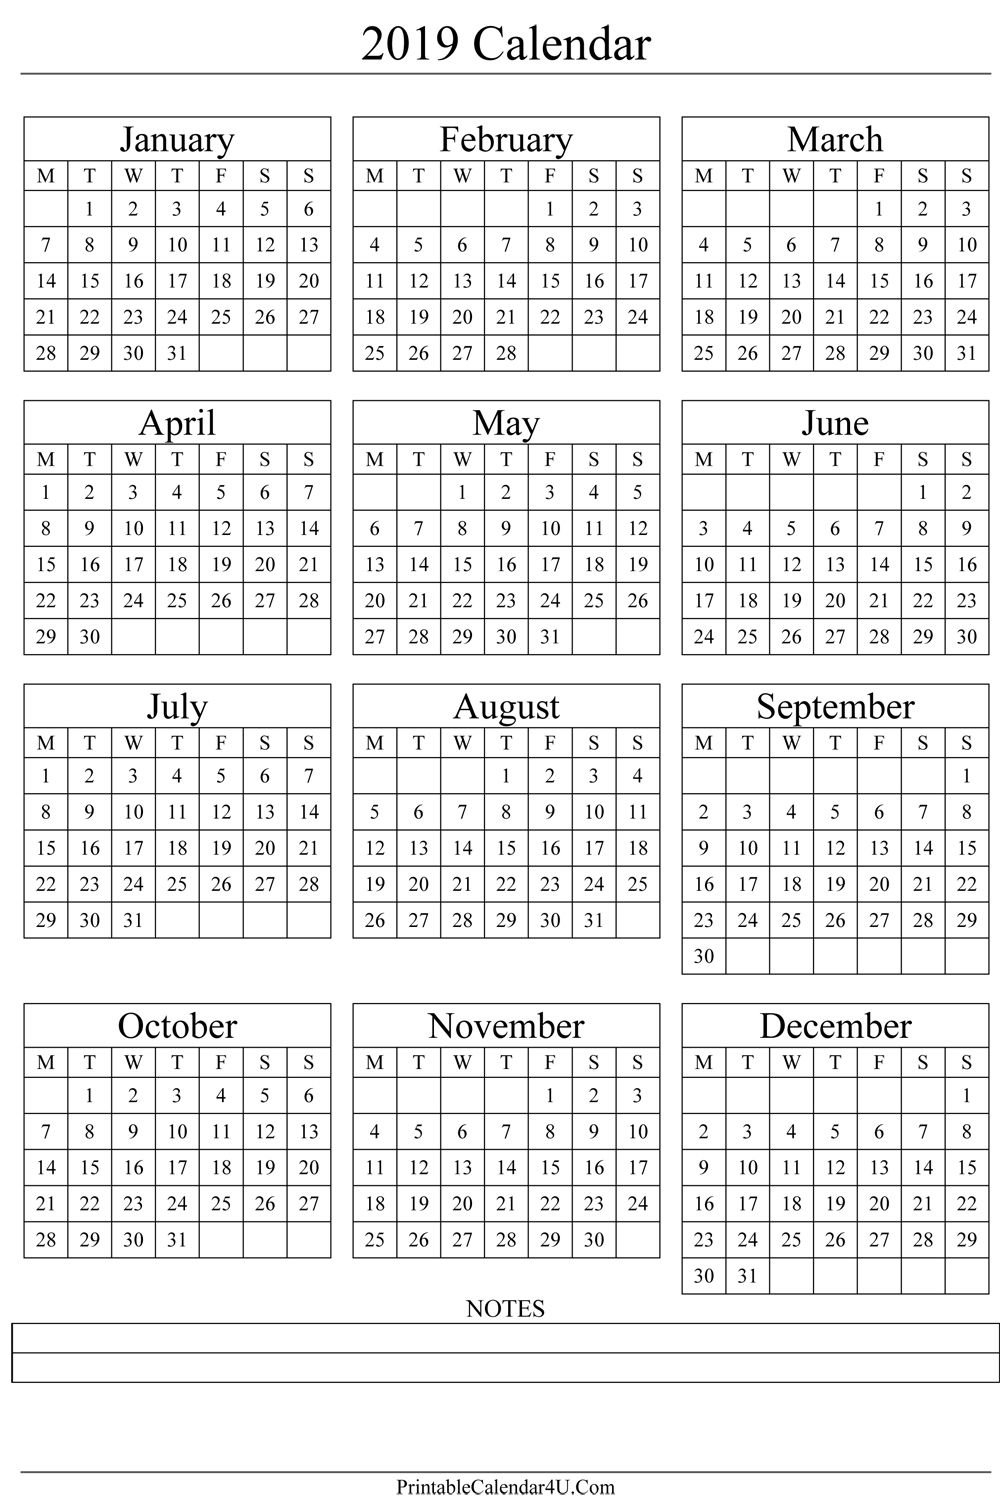 Annual Calendar 2019 Portrait Printable Calendar 2017 | Gift Ideas Calendar 2019 Year Printable